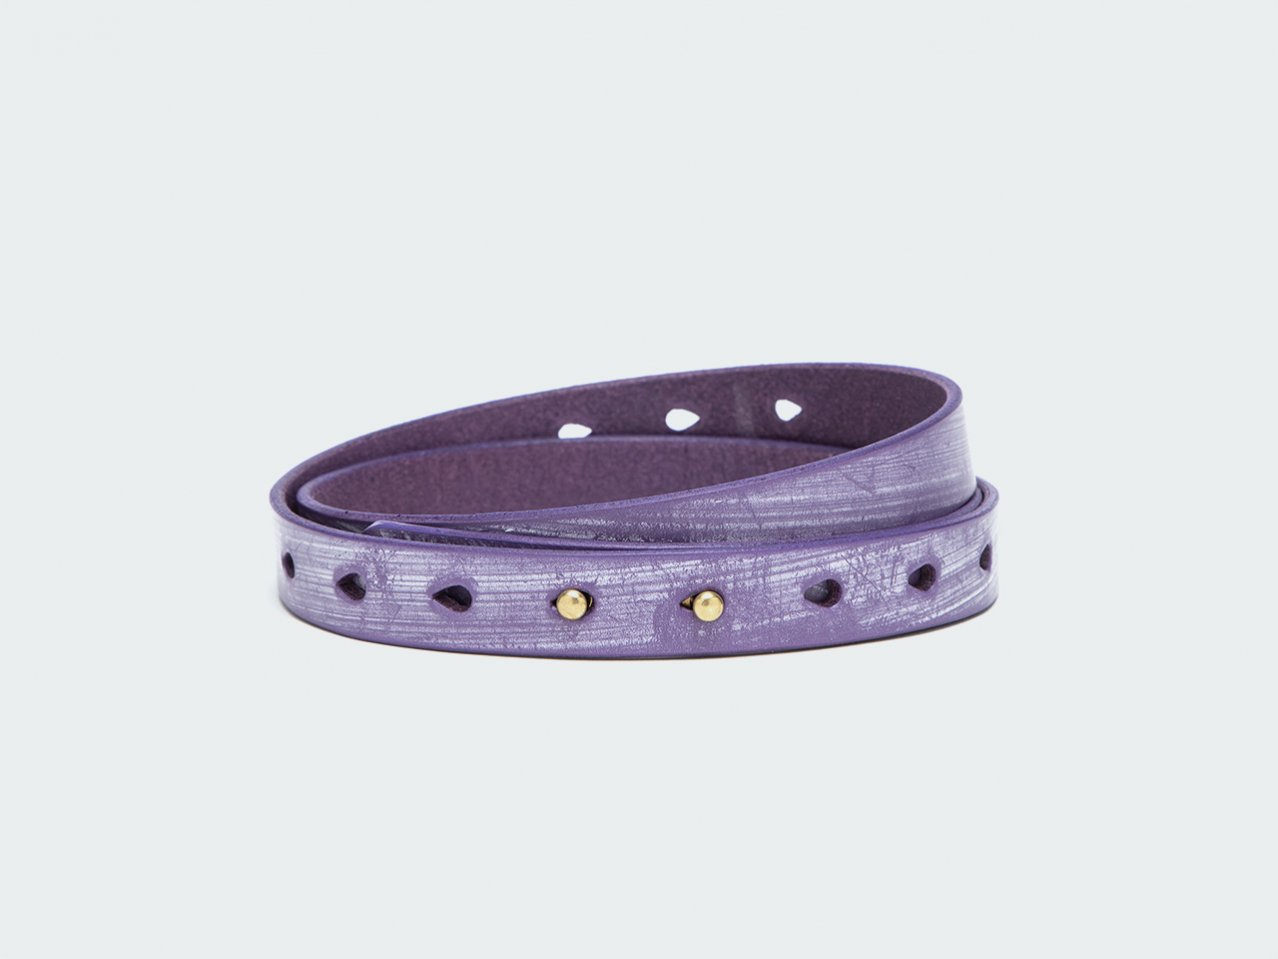 NARROW BUTTON (Bridle) 20 / PURPLE